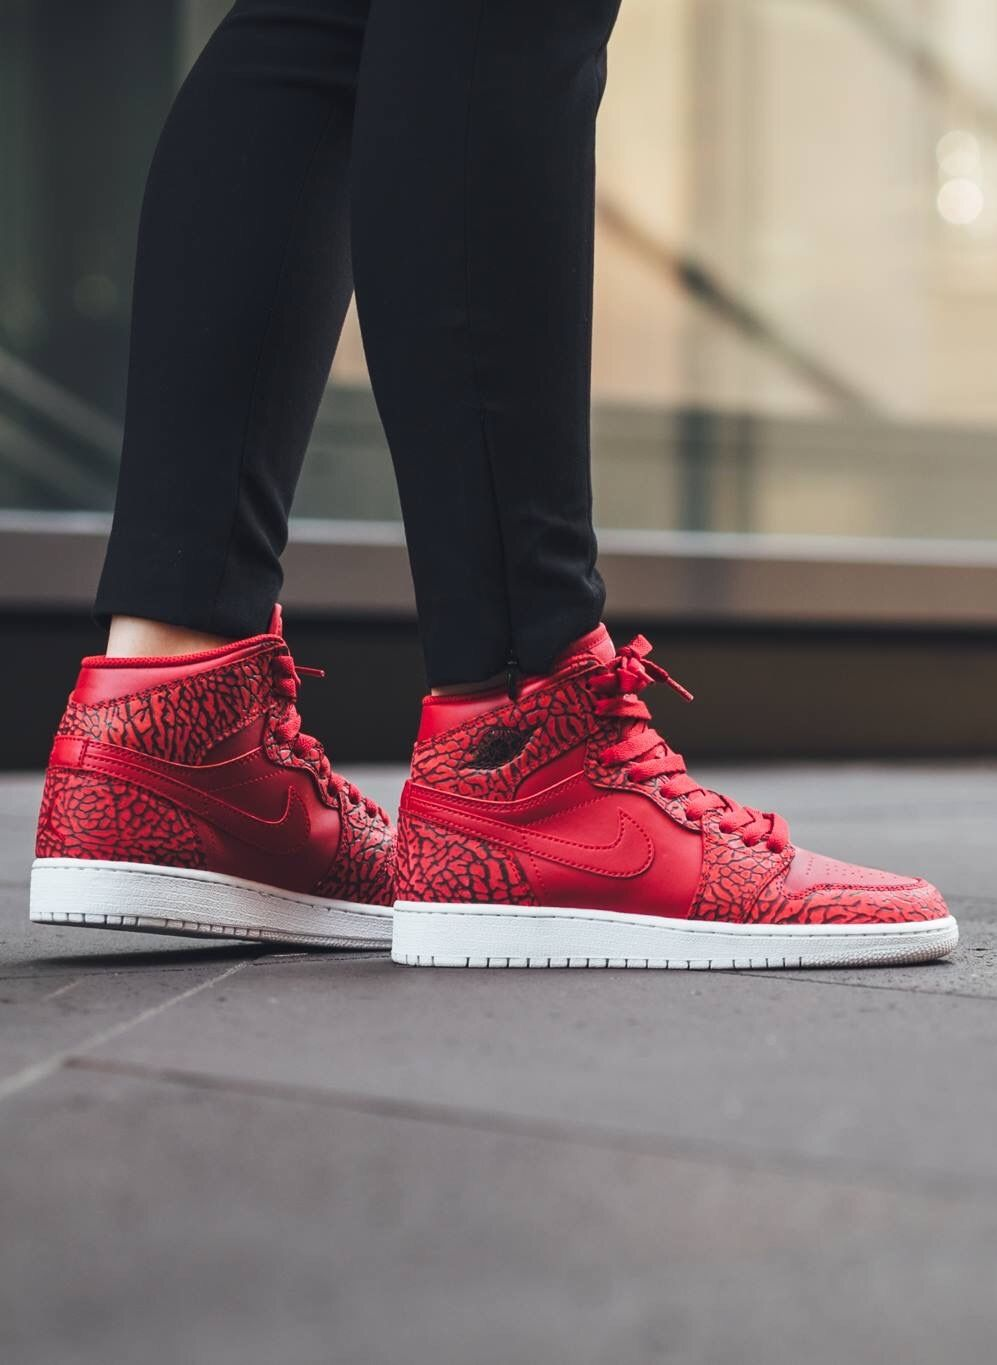 Nike Air Jordan 1  Red Elephant   927cdf9aea8e